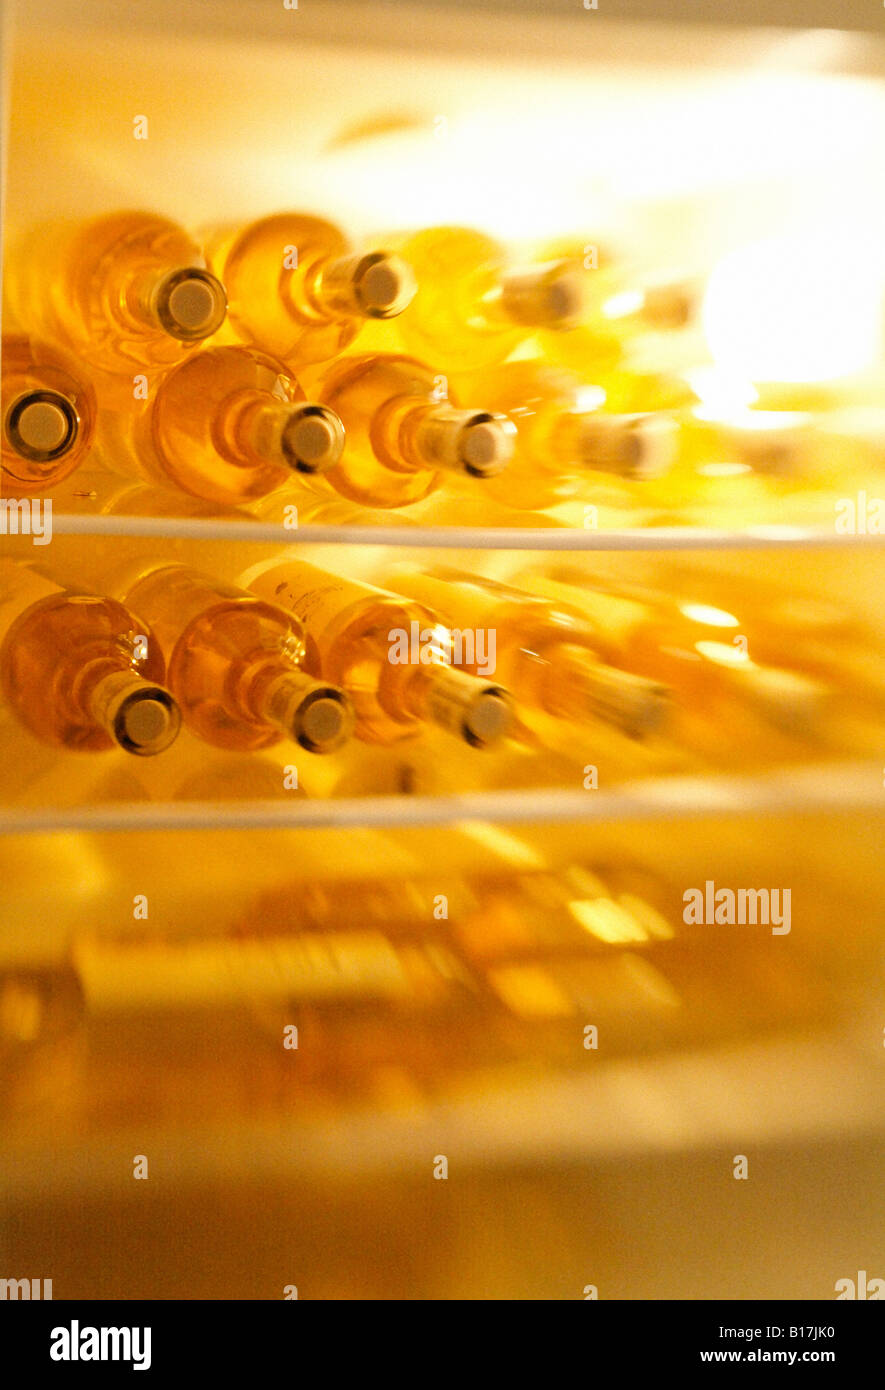 Bottles of white wine in a fridge, blurred - Stock Image